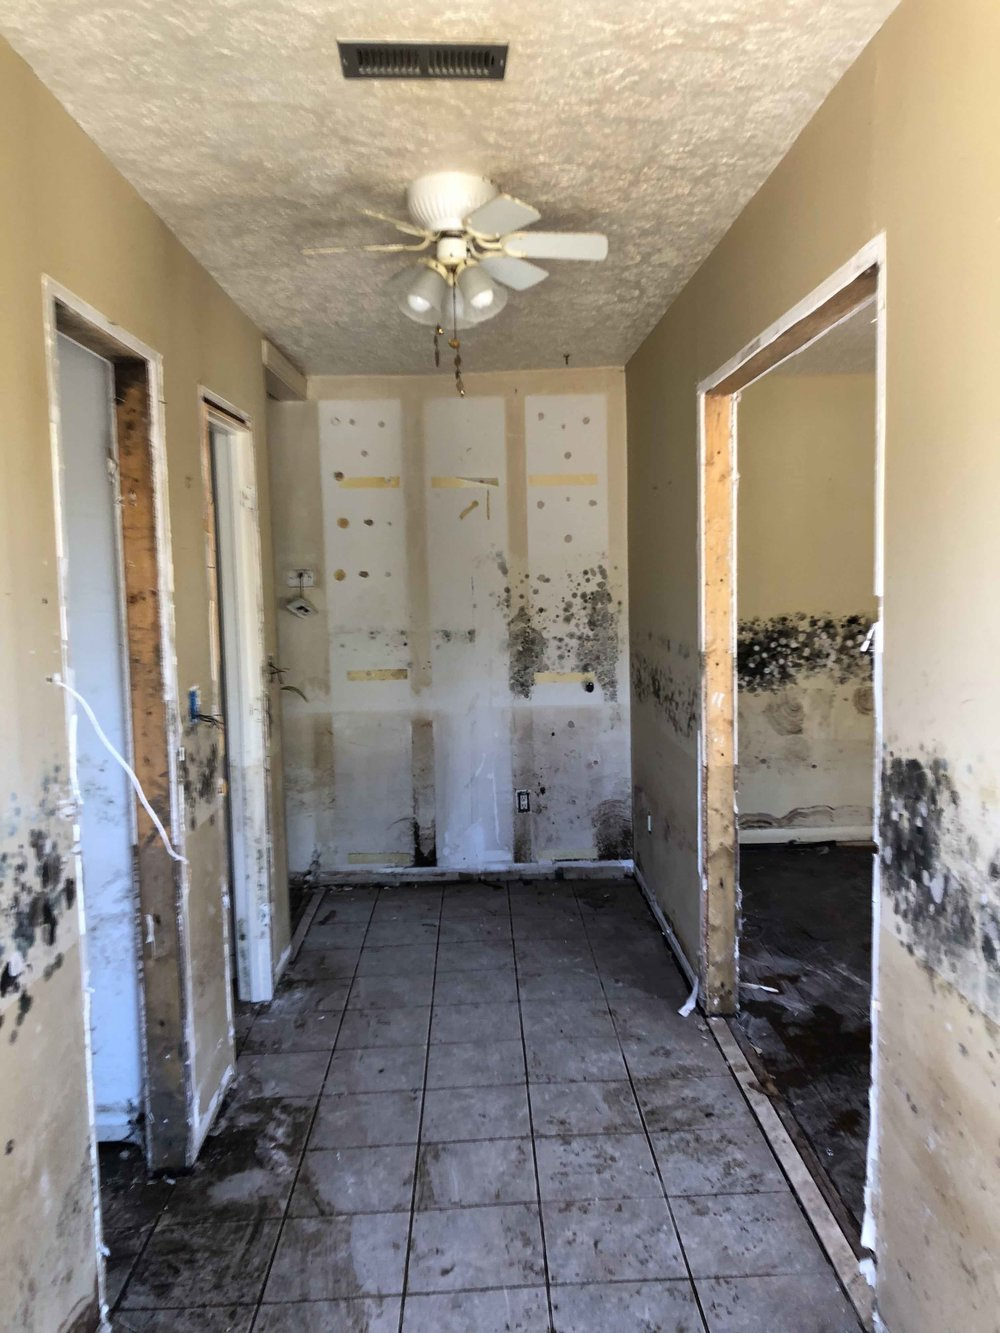 """The amount of flooding in Conway overwhelmed many residents, who have had to relocate until they are in a position to """"mud out"""" their homes. St. Paul's Conway is helping their neighbors with the help of donors from across the country."""